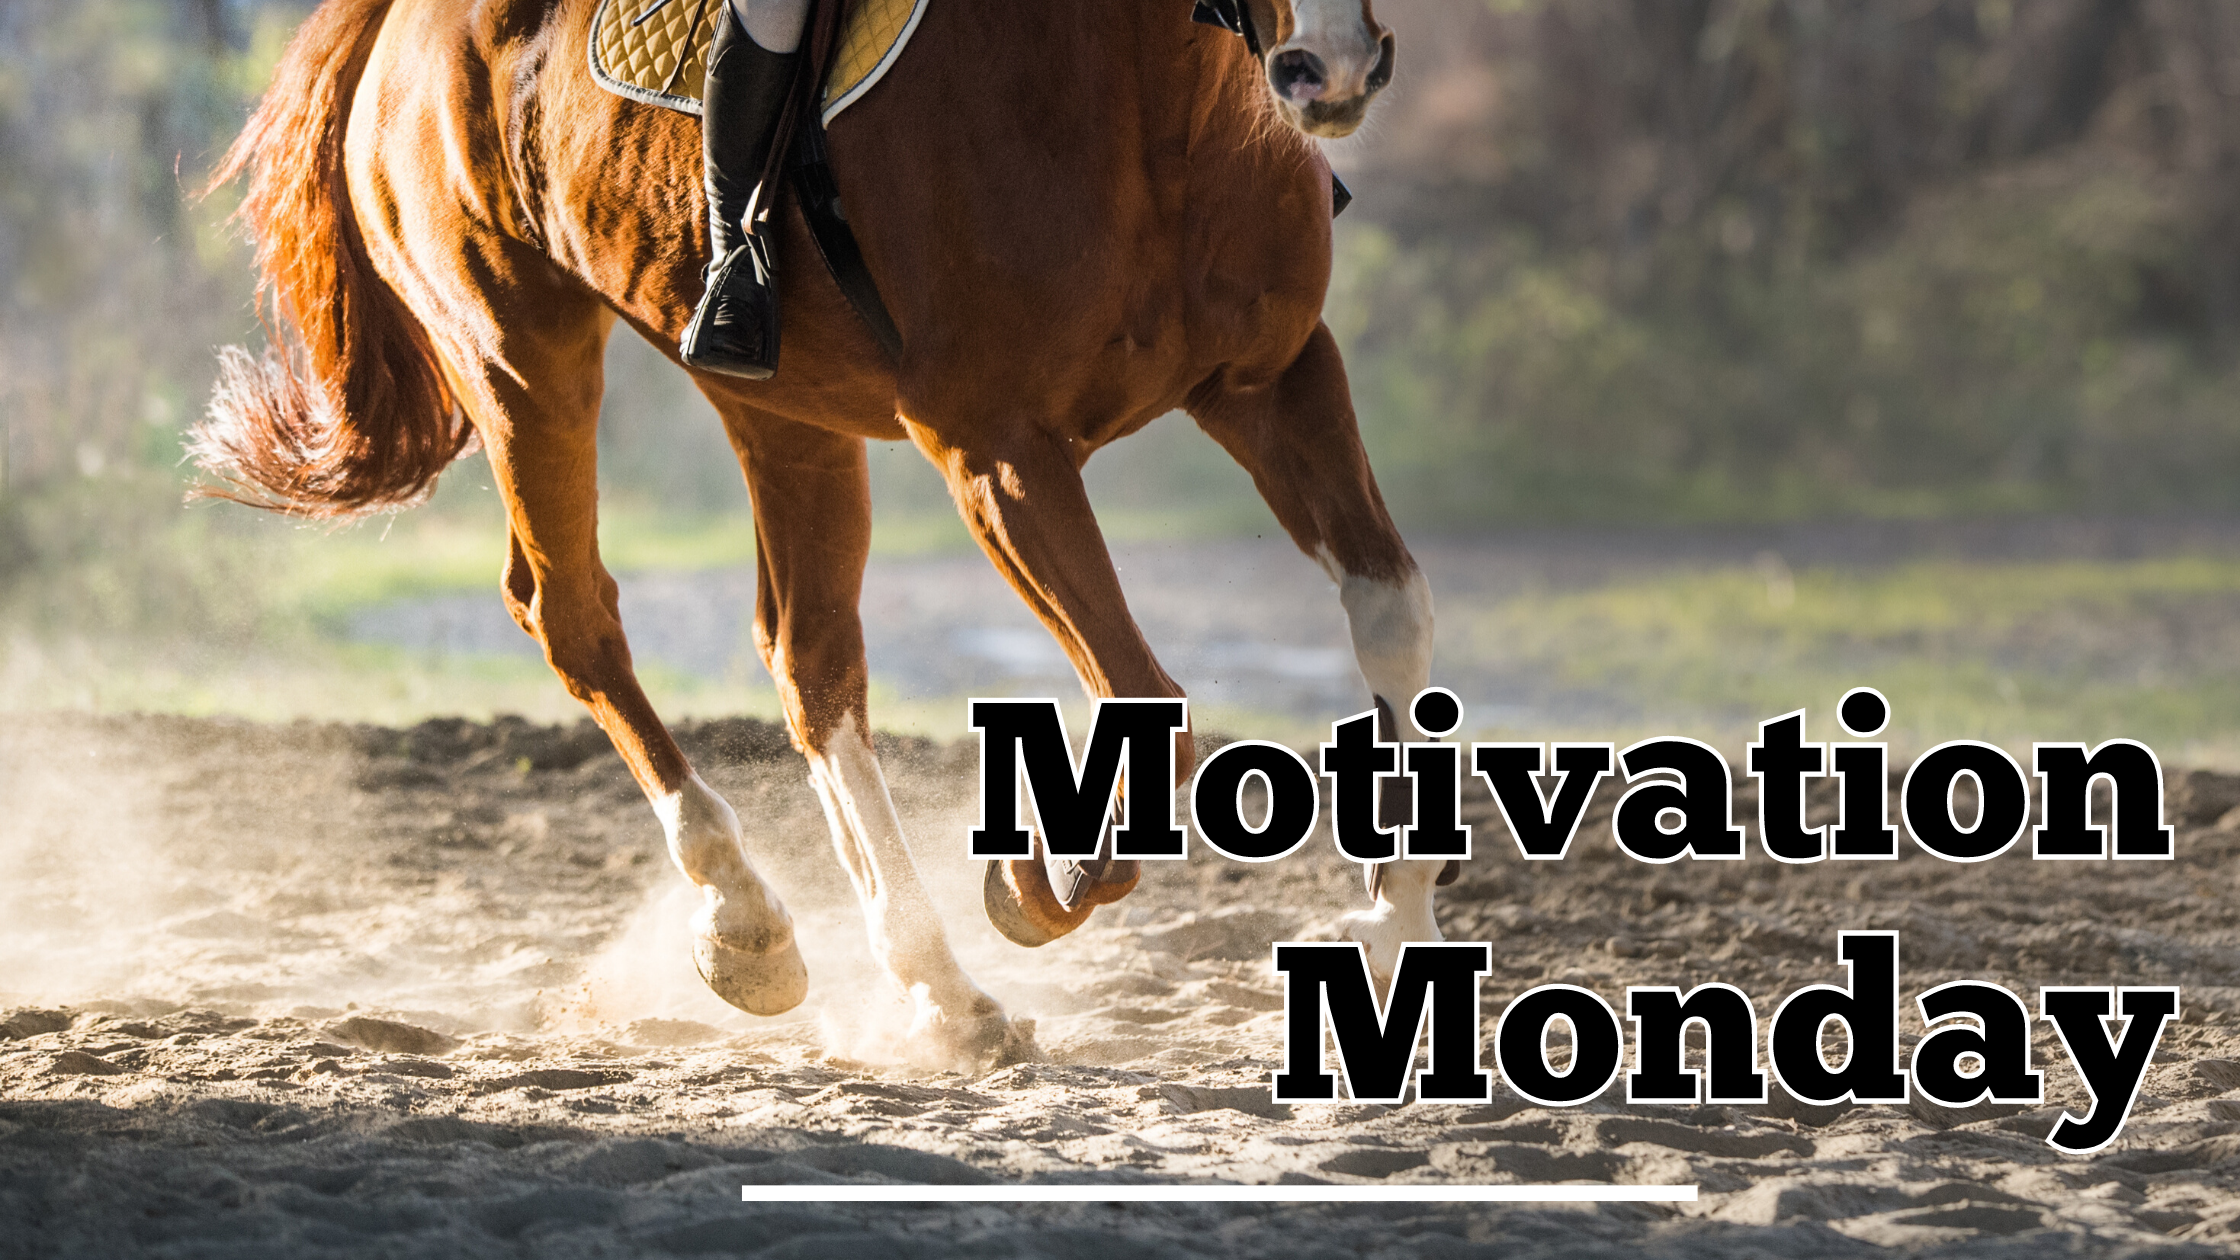 Photo of a chestnut colored horse being ridden in a sand arena, with the words Motivation Monday in the lower right corner